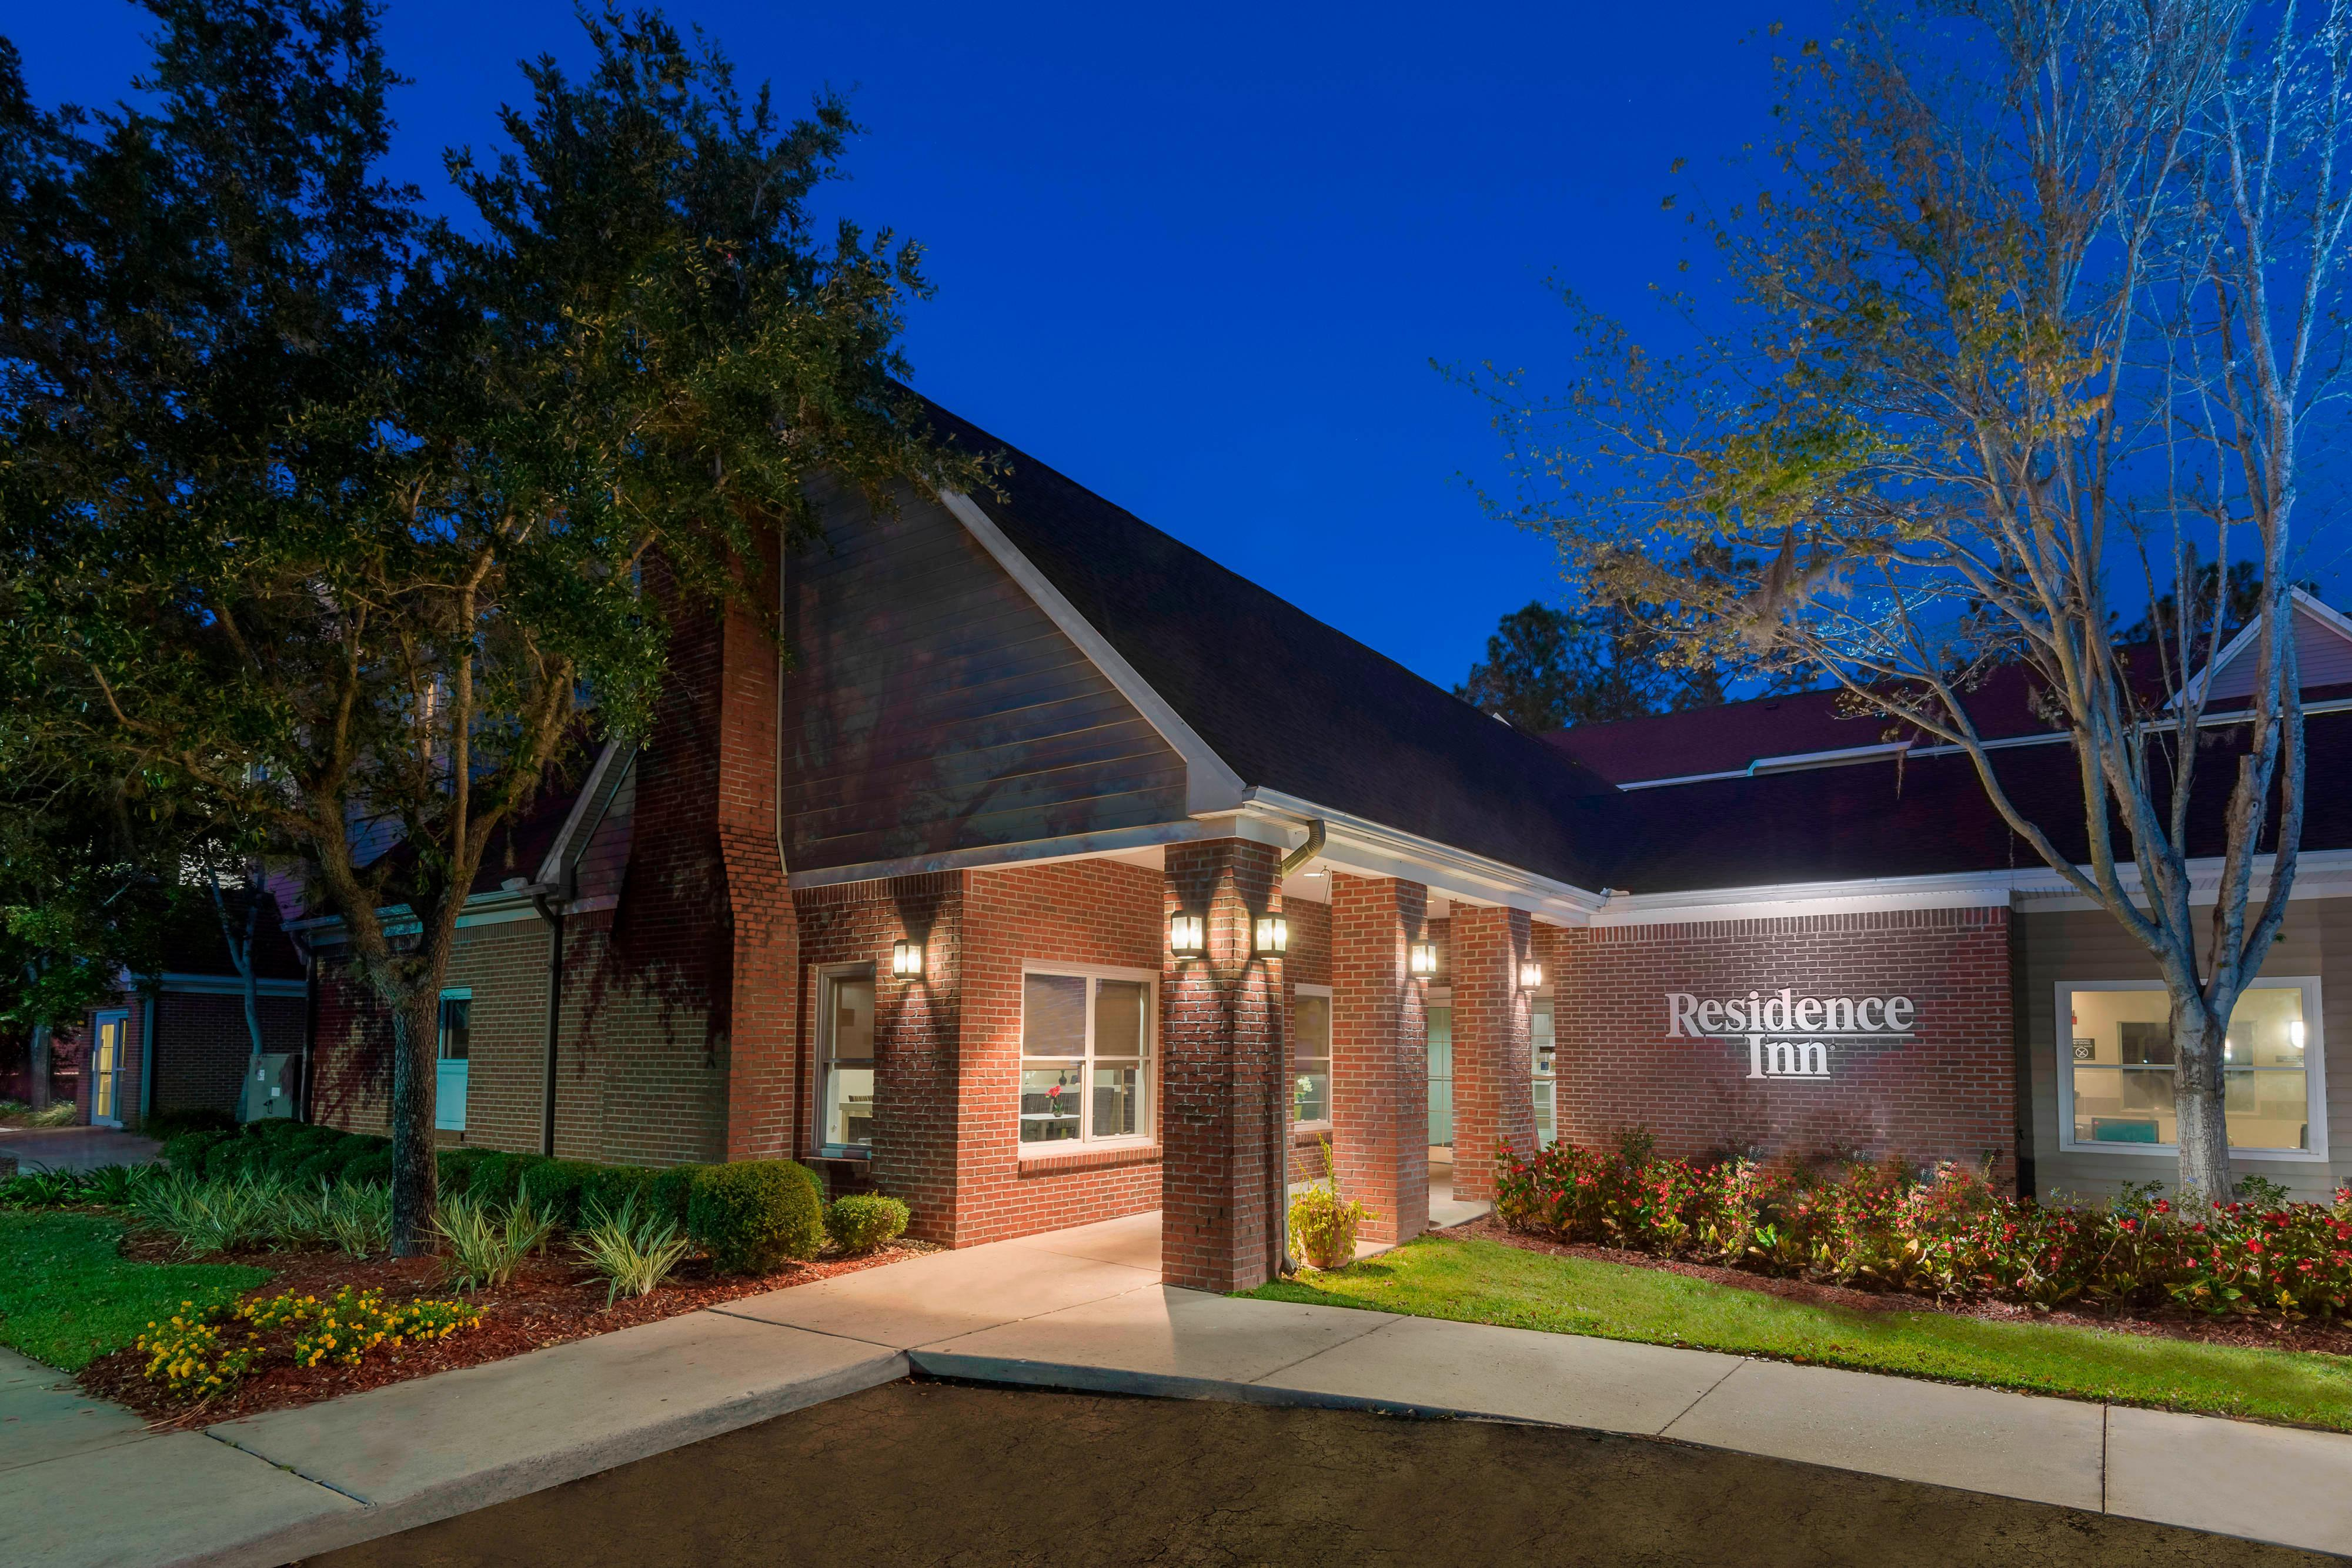 Residence Inn By Marriott Tallahassee North Capital Circle